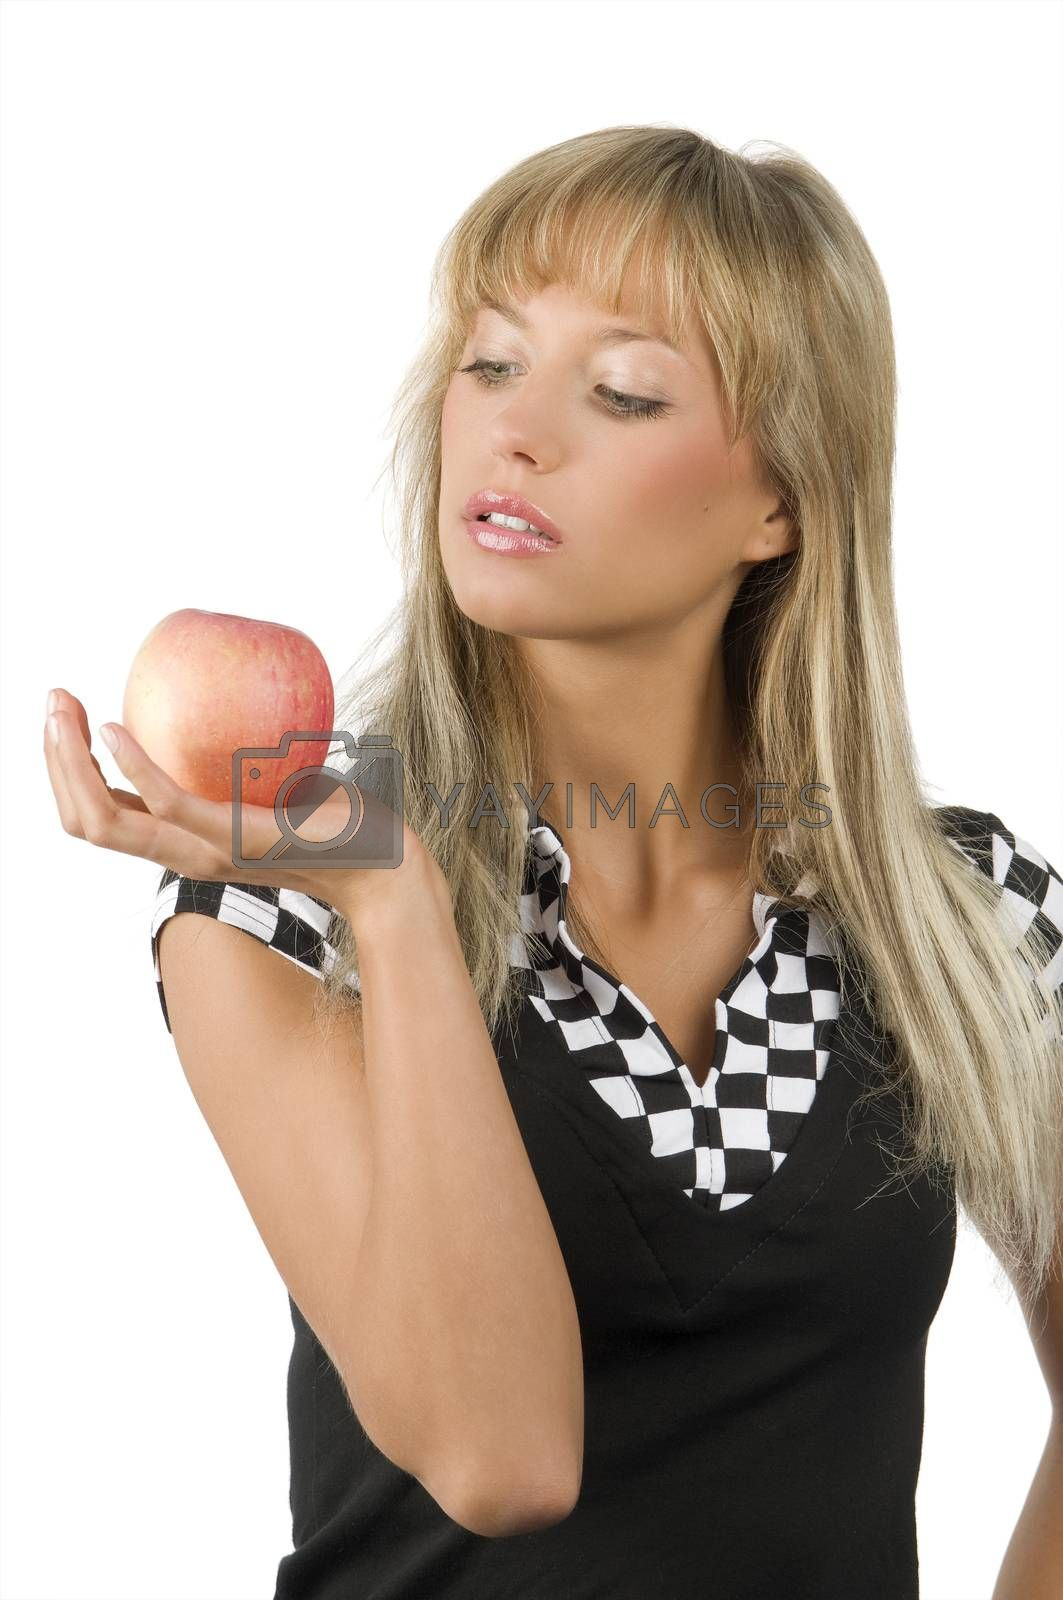 Royalty free image of apple in hand by fotoCD